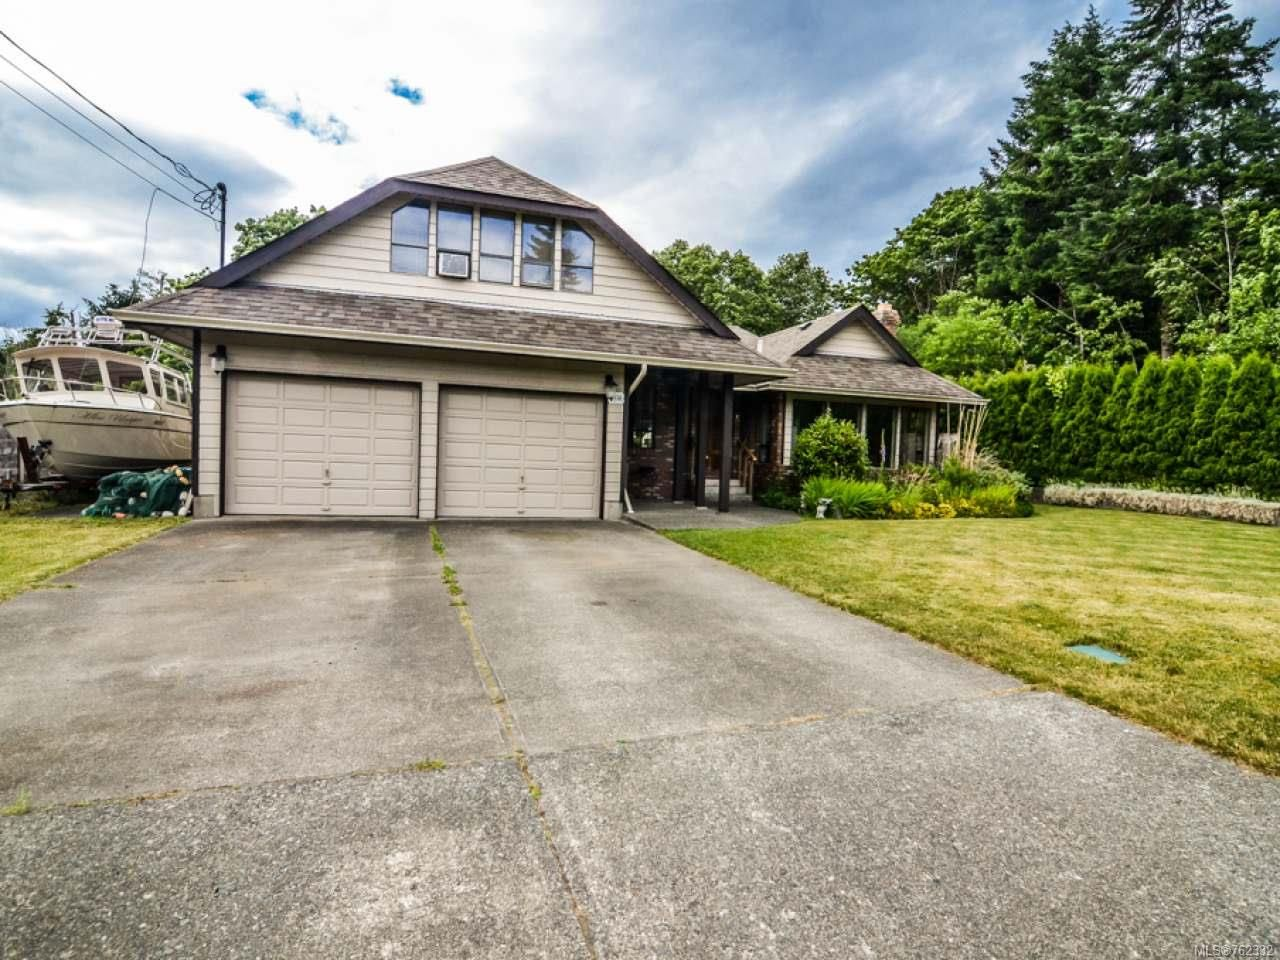 Photo 45: Photos: 1656 Galerno Rd in CAMPBELL RIVER: CR Campbell River Central House for sale (Campbell River)  : MLS®# 762332